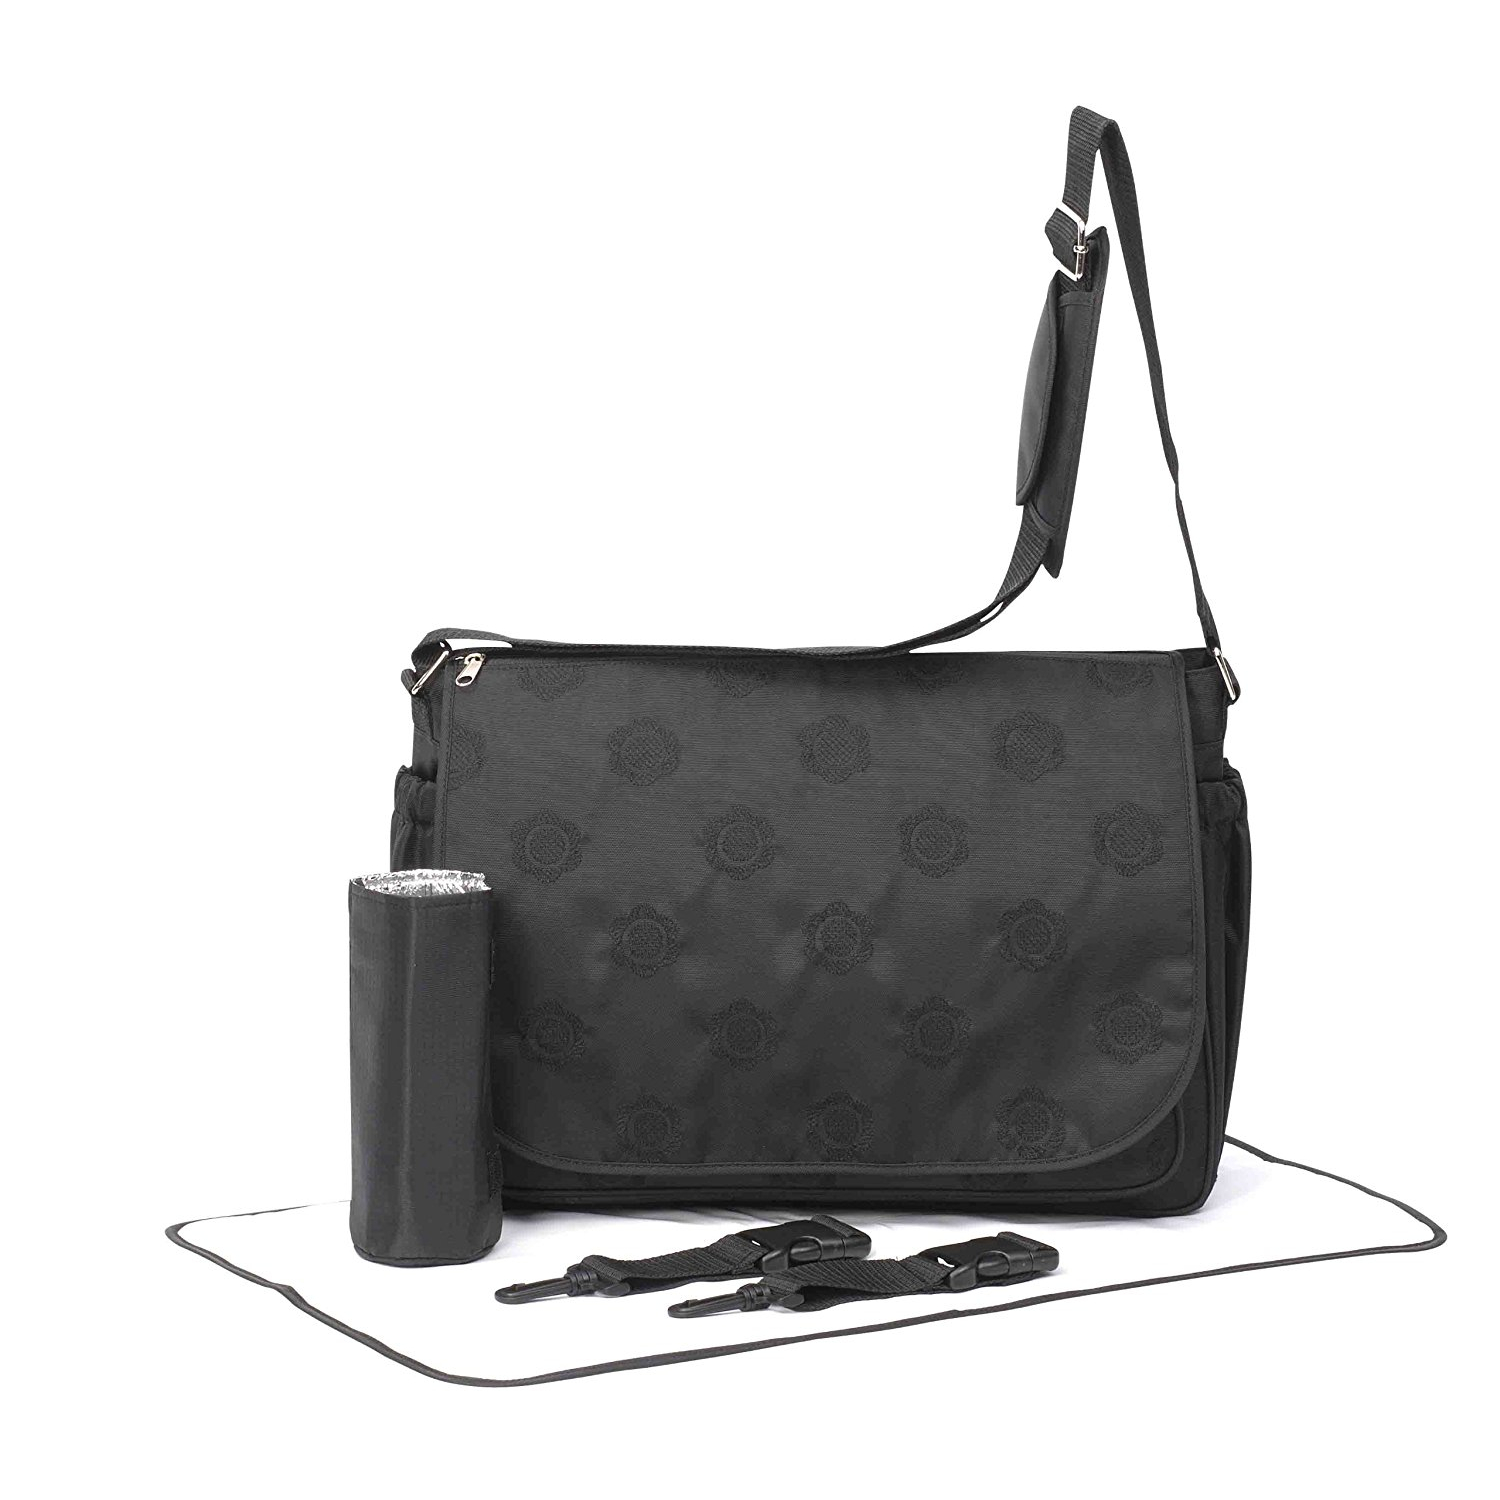 Look - Changing stylish bags baby video